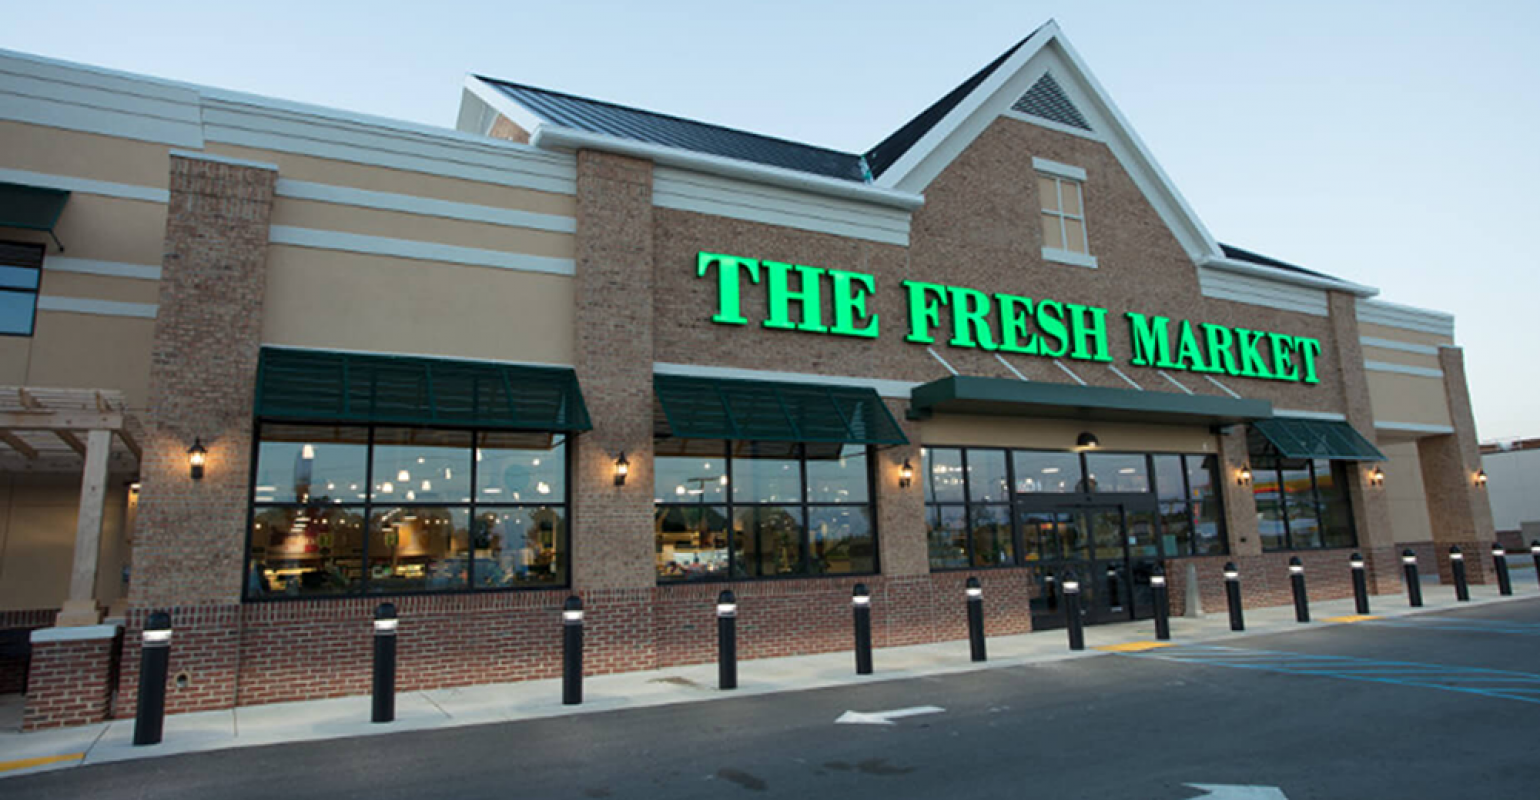 The Fresh Market brings Instacart delivery to all stores